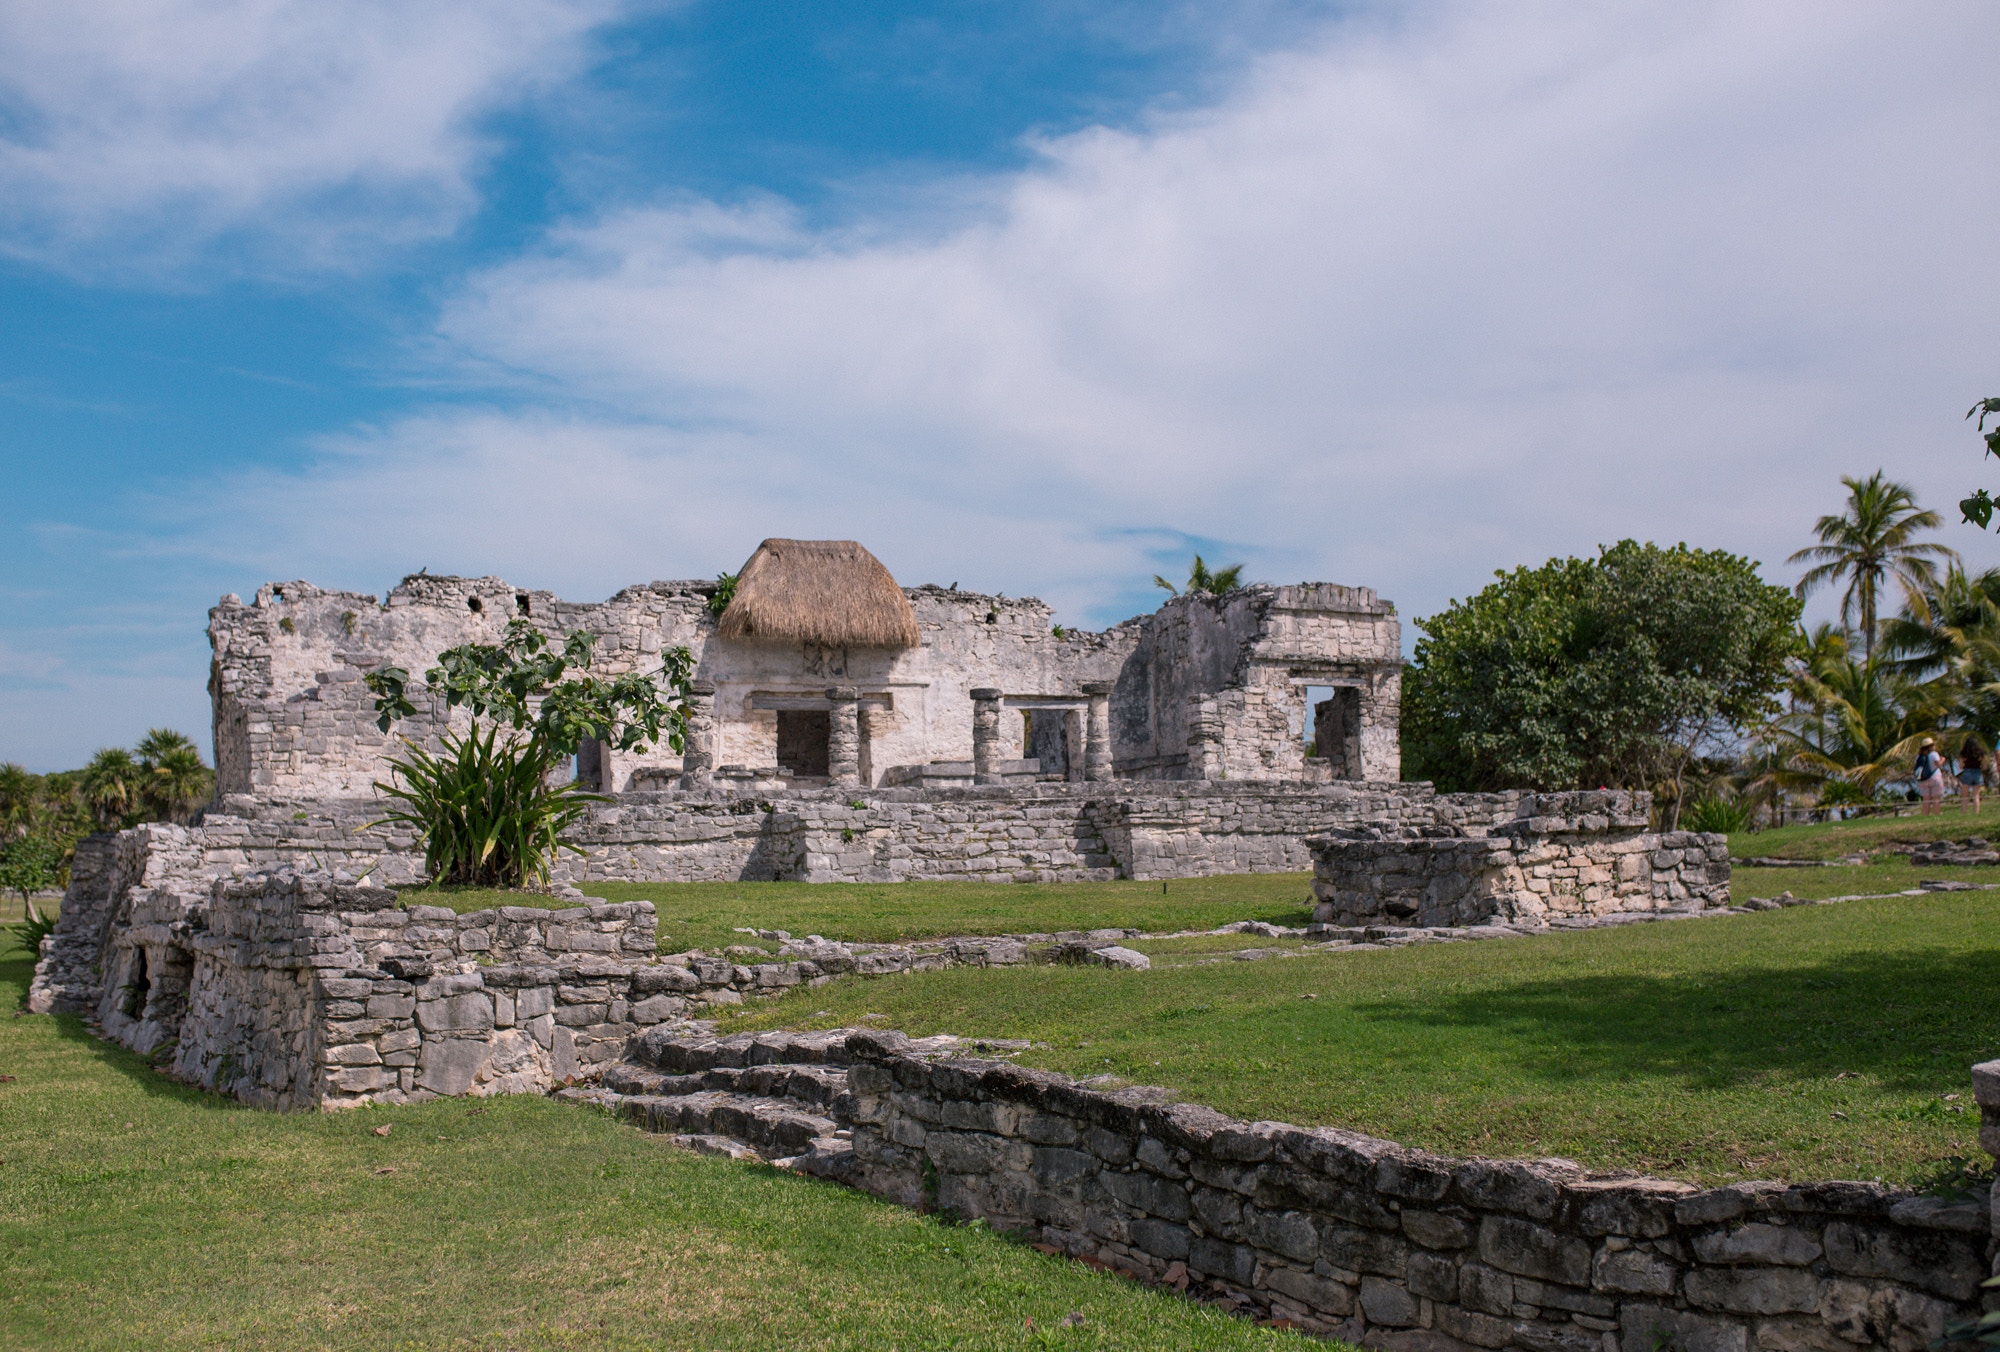 The Palace building at the Tulum Archeological Site - I'm sharing 10 Tips for visiting Tulum, Mexico.